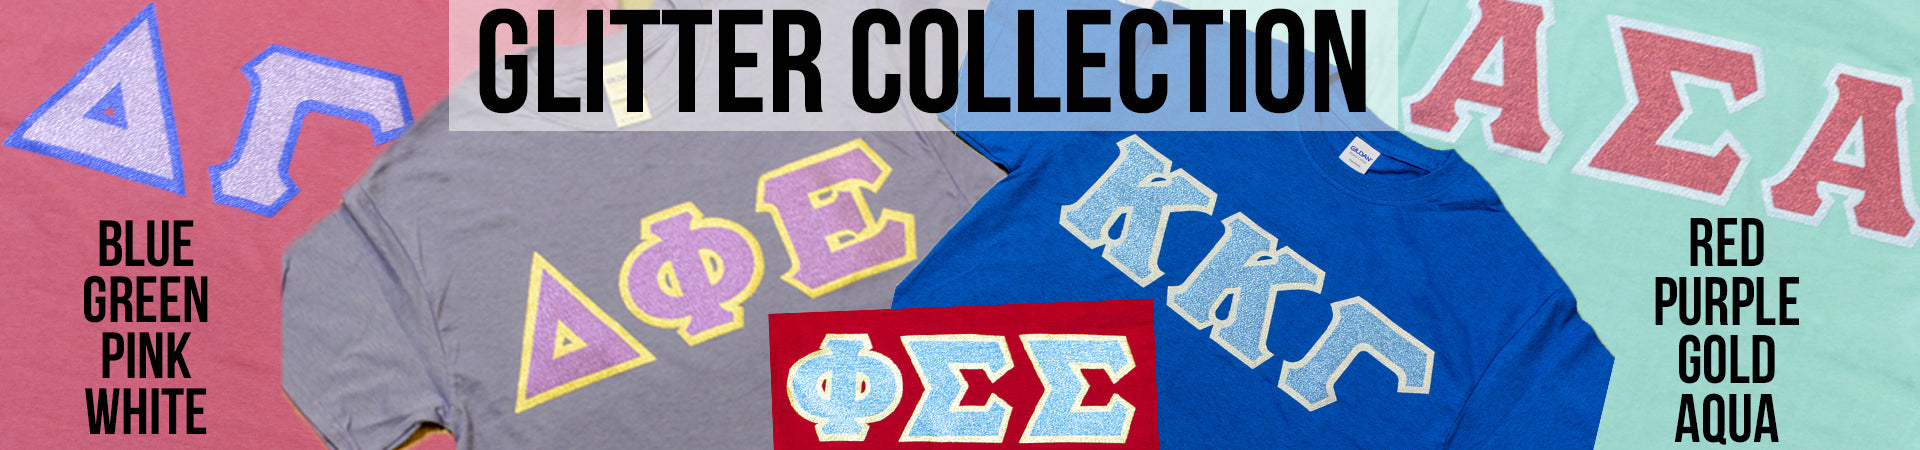 Sorority Shirts with Glitter Letters